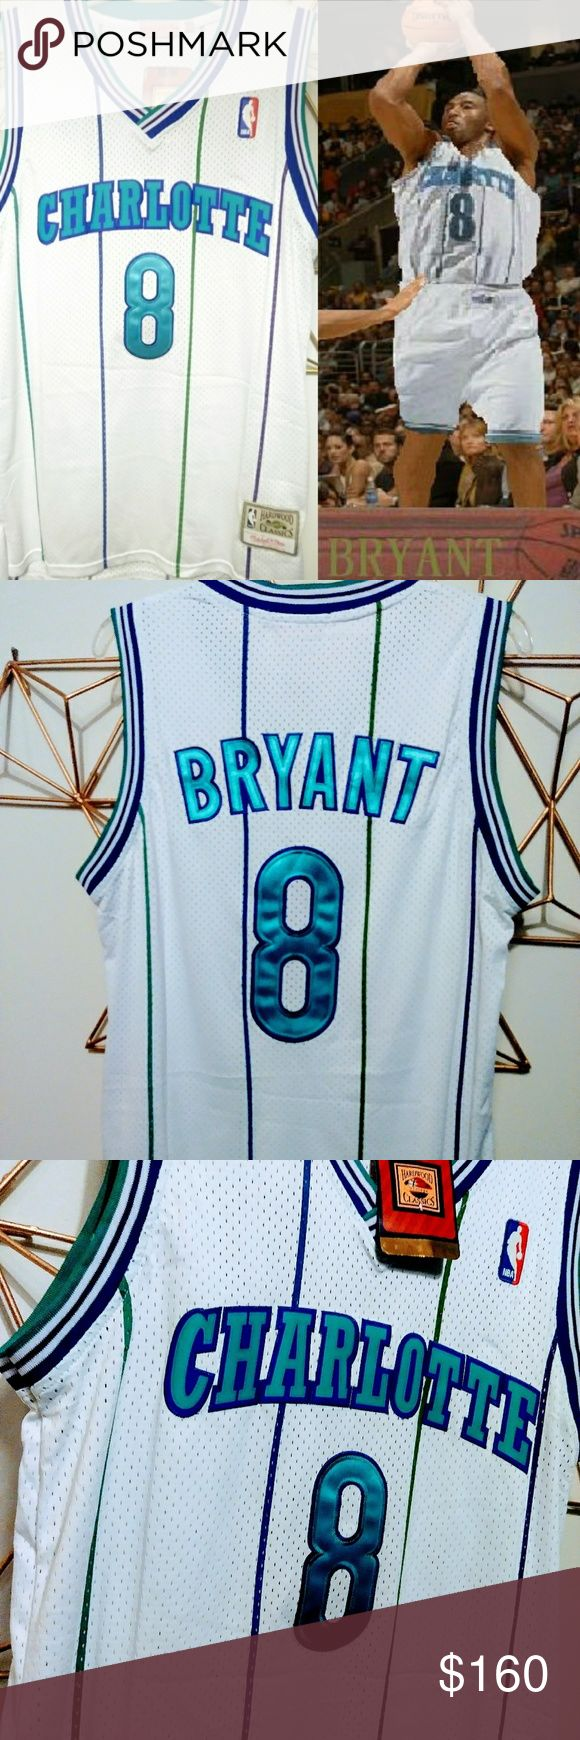 1996 Draft Kobe Bryant Charlotte Hornets Jersey Size: Medium  For those that don't know, Kobe Bryant was selected 13th overall by the Charlotte Hornets in the 1996 NBA Draft.  Jersey is mesh and lettering is stitched. Great for any collector or Kobe Bryant fan. Mitchell & Ness Shirts Tank Tops